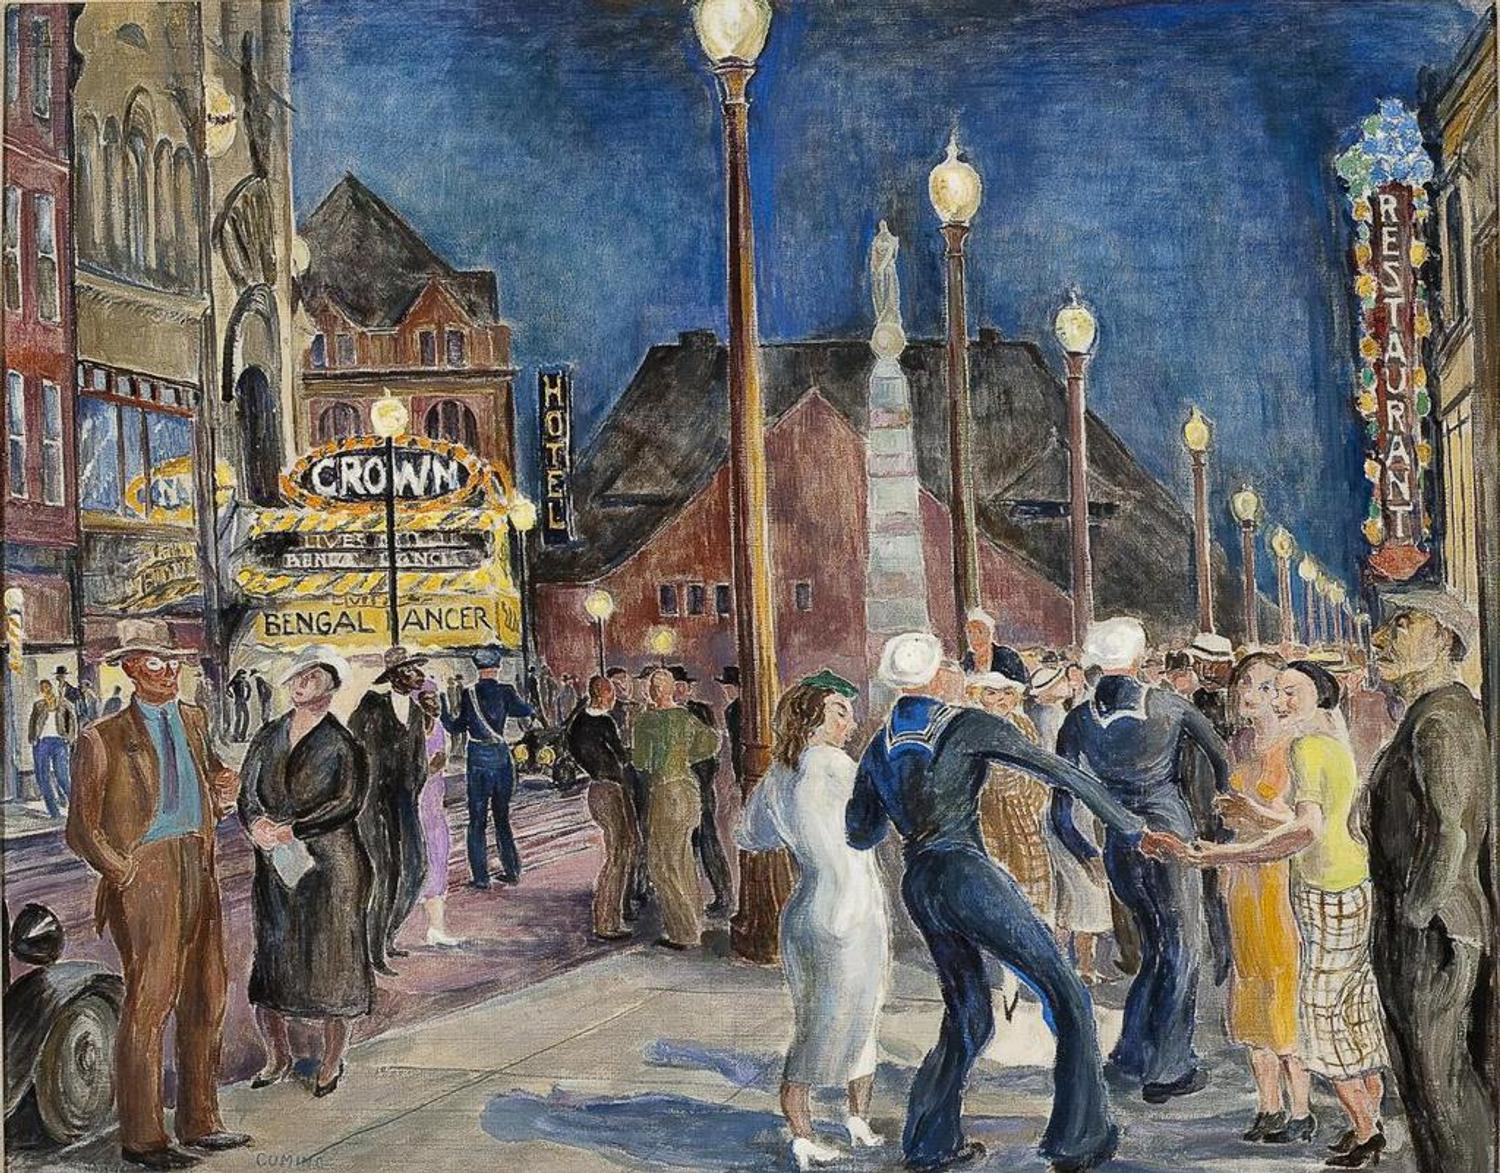 Connecticut watercolor artists directory - Mattatuck Museum Presents Connecticut Art From The Depression Era Federal Art Project Artwire Press Release From Artfixdaily Com